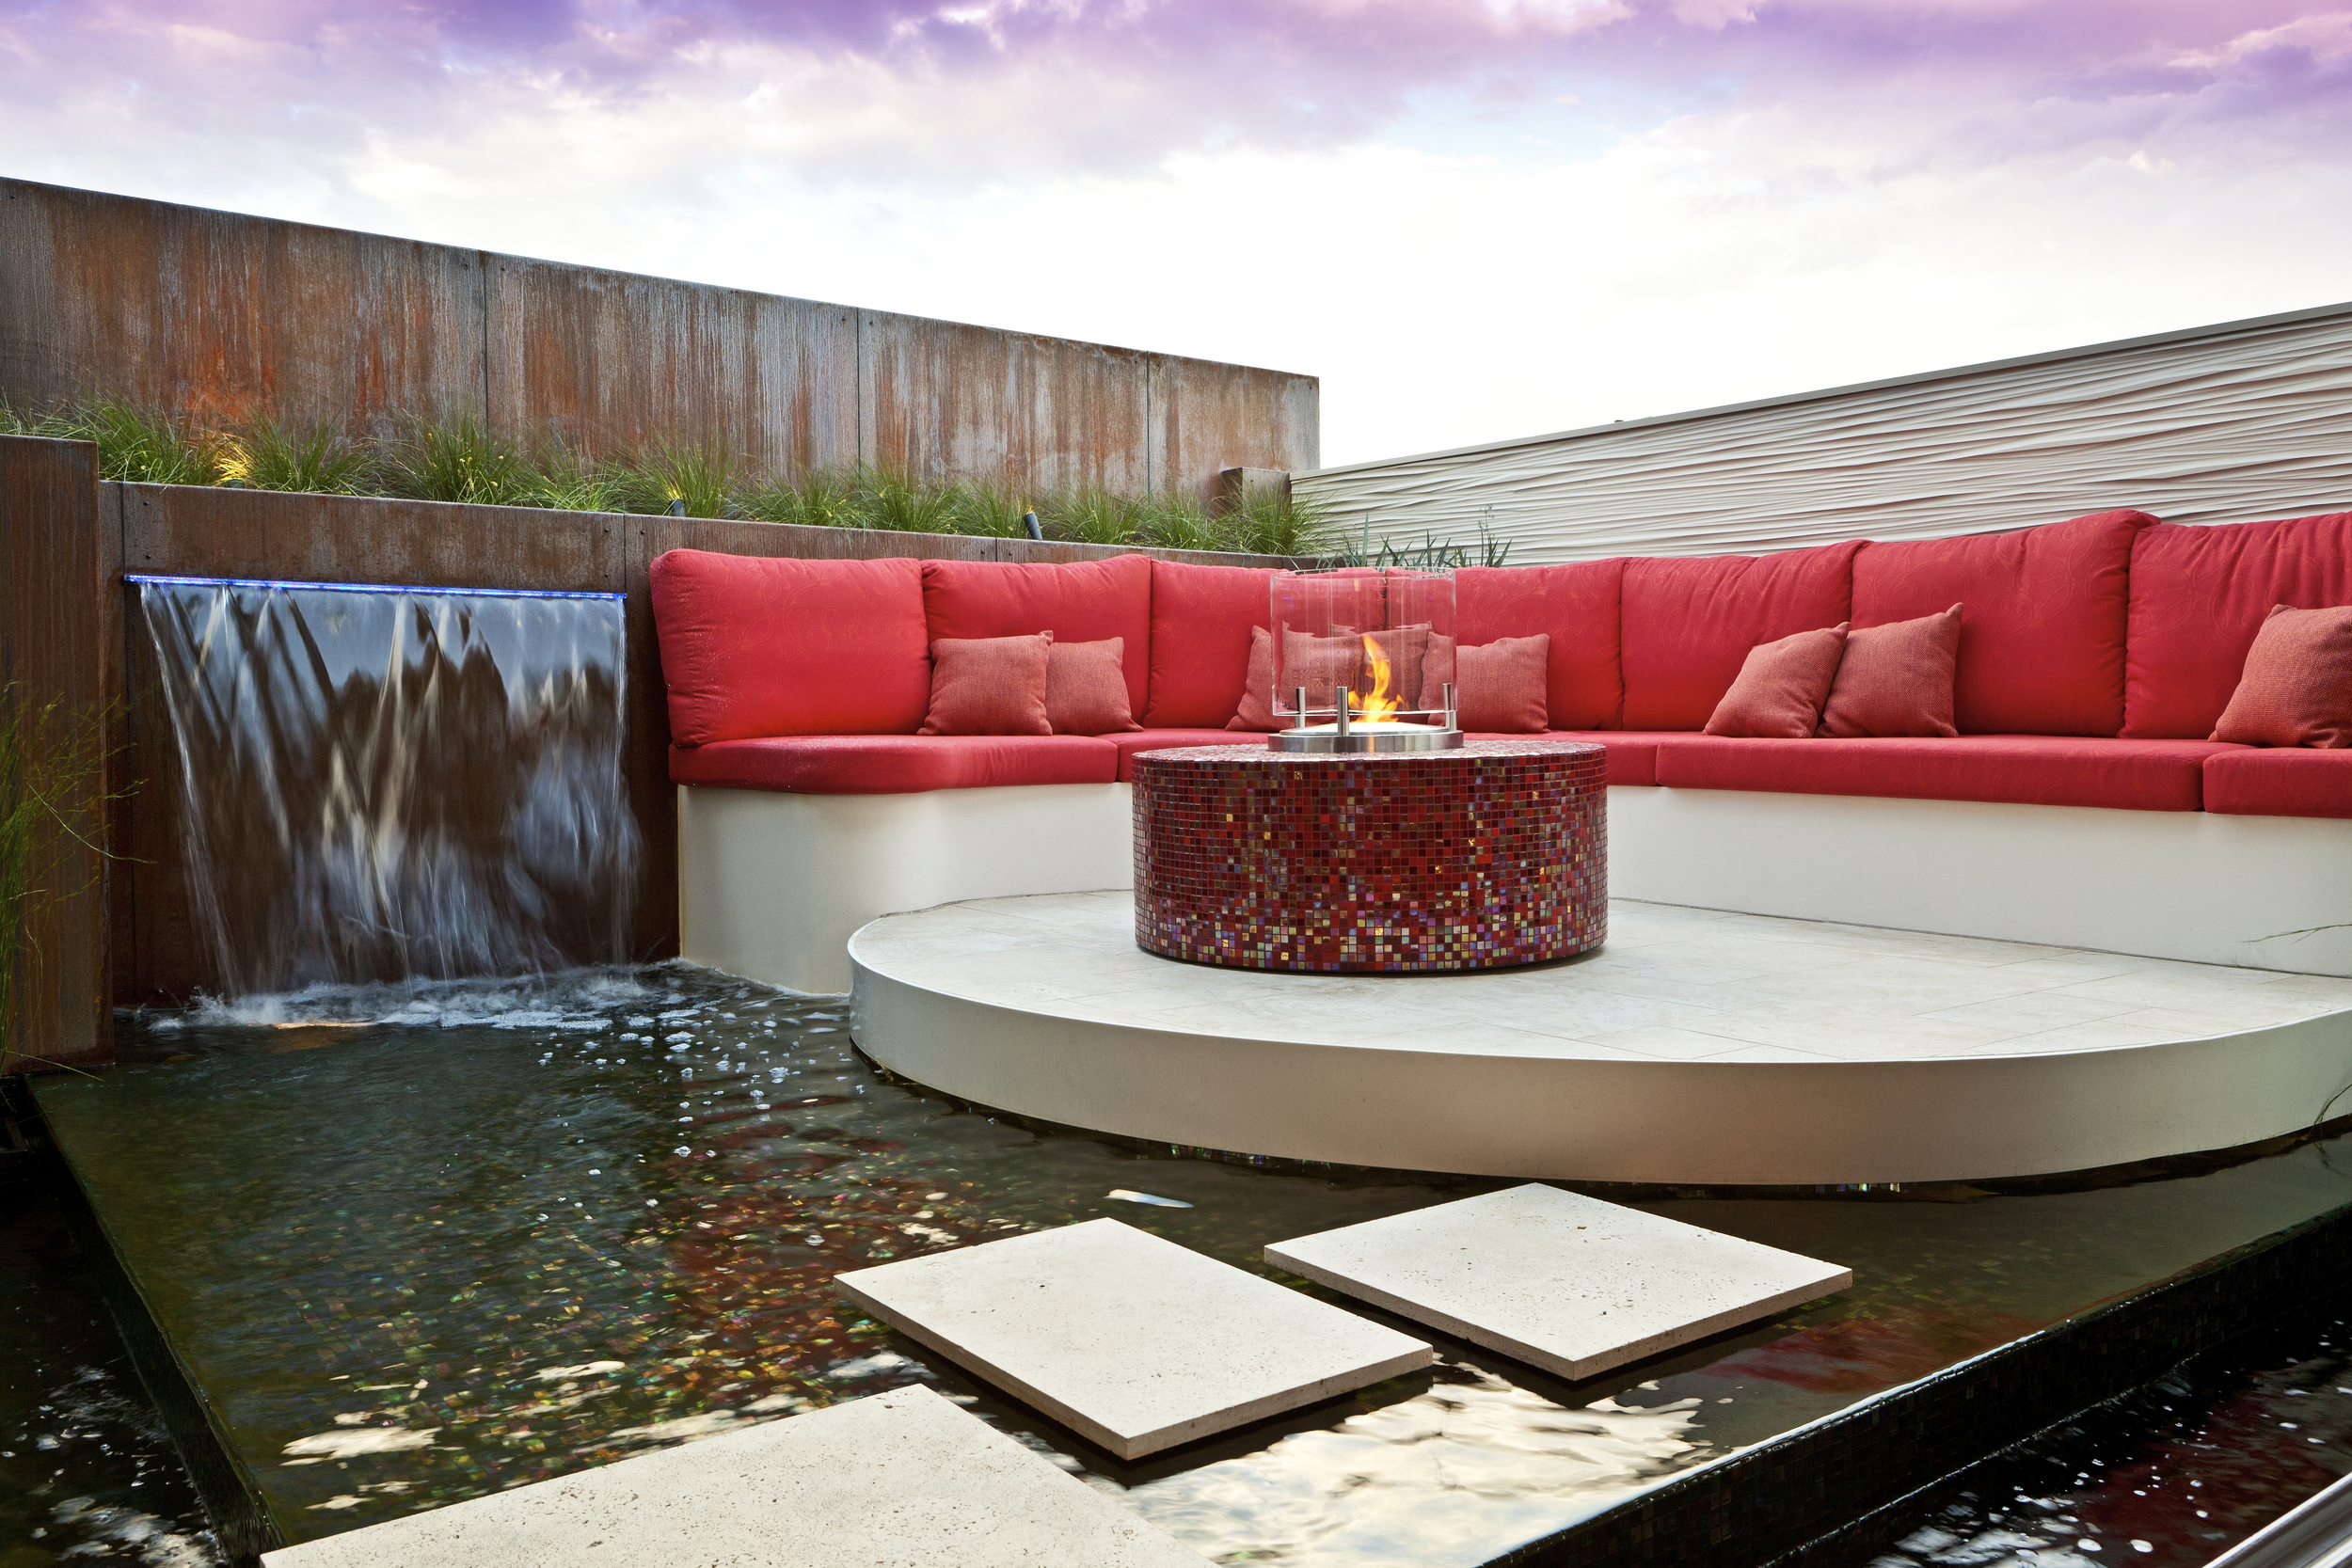 A dramatic rooftop garden space that incorporates moving water, a 'floating' outdoor lounge and observation platform, and plenty of fish.